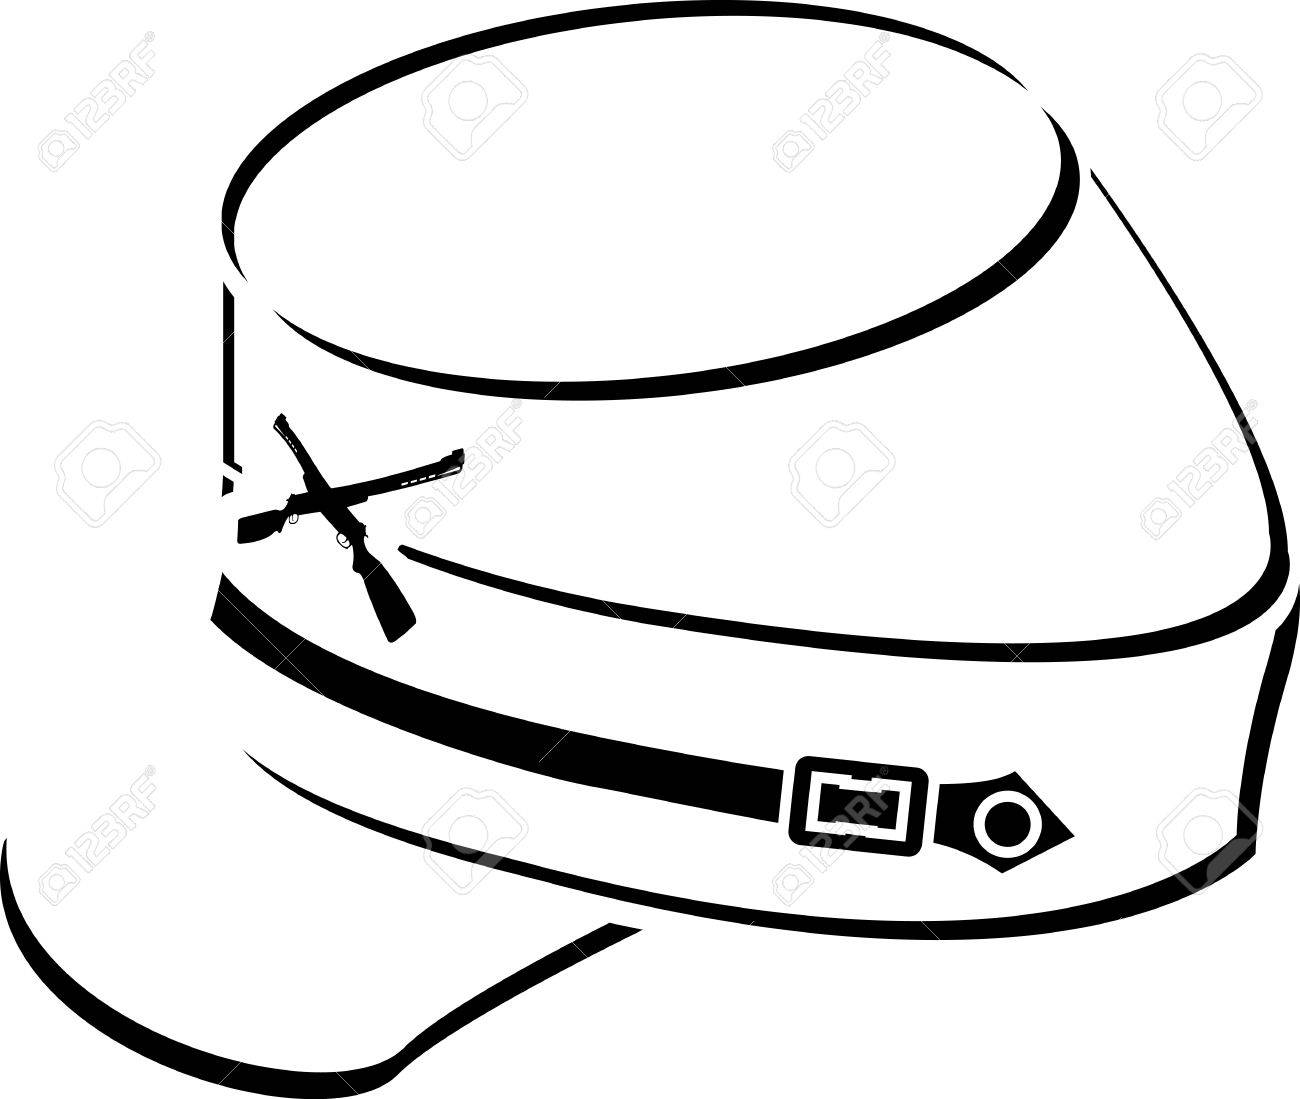 american civil war kepi sketch illustration royalty free cliparts rh 123rf com